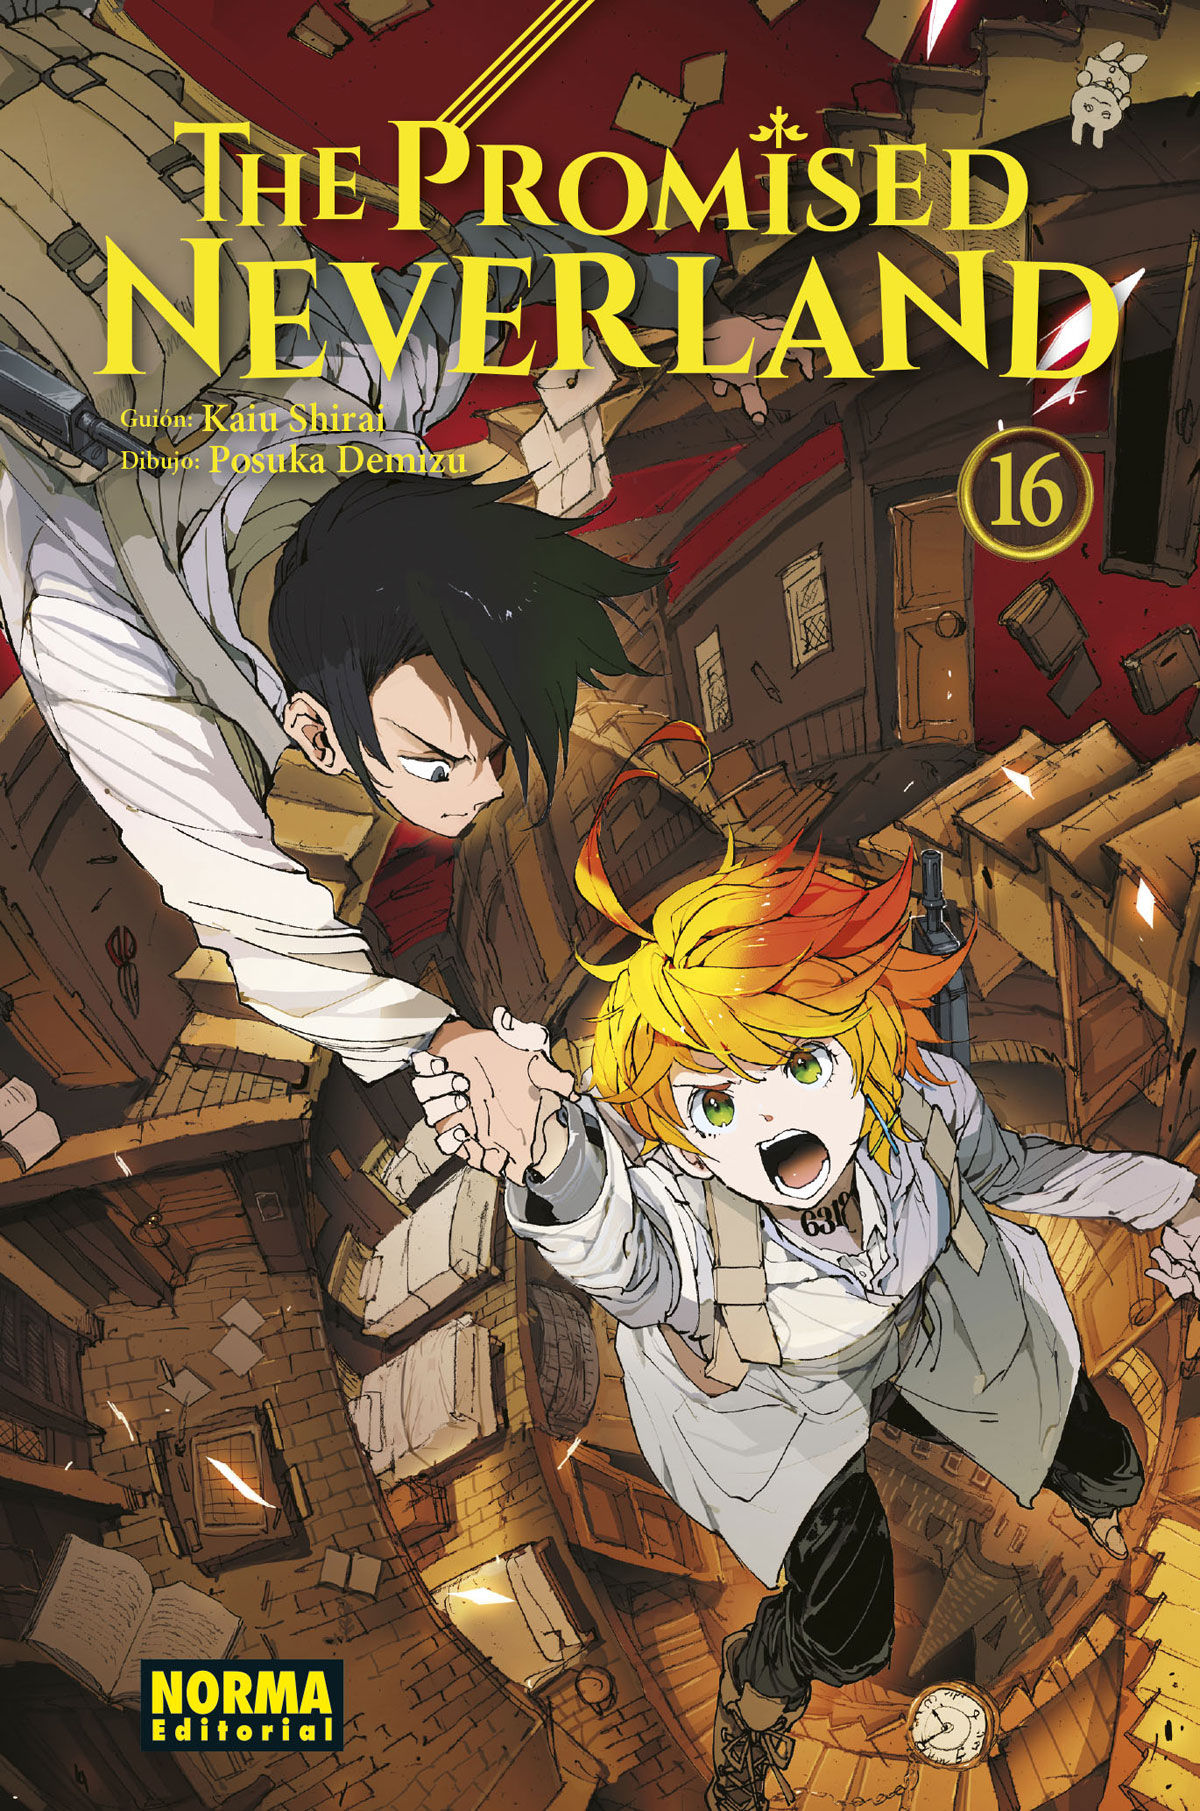 PROMISED NEVERLAND 16 THE